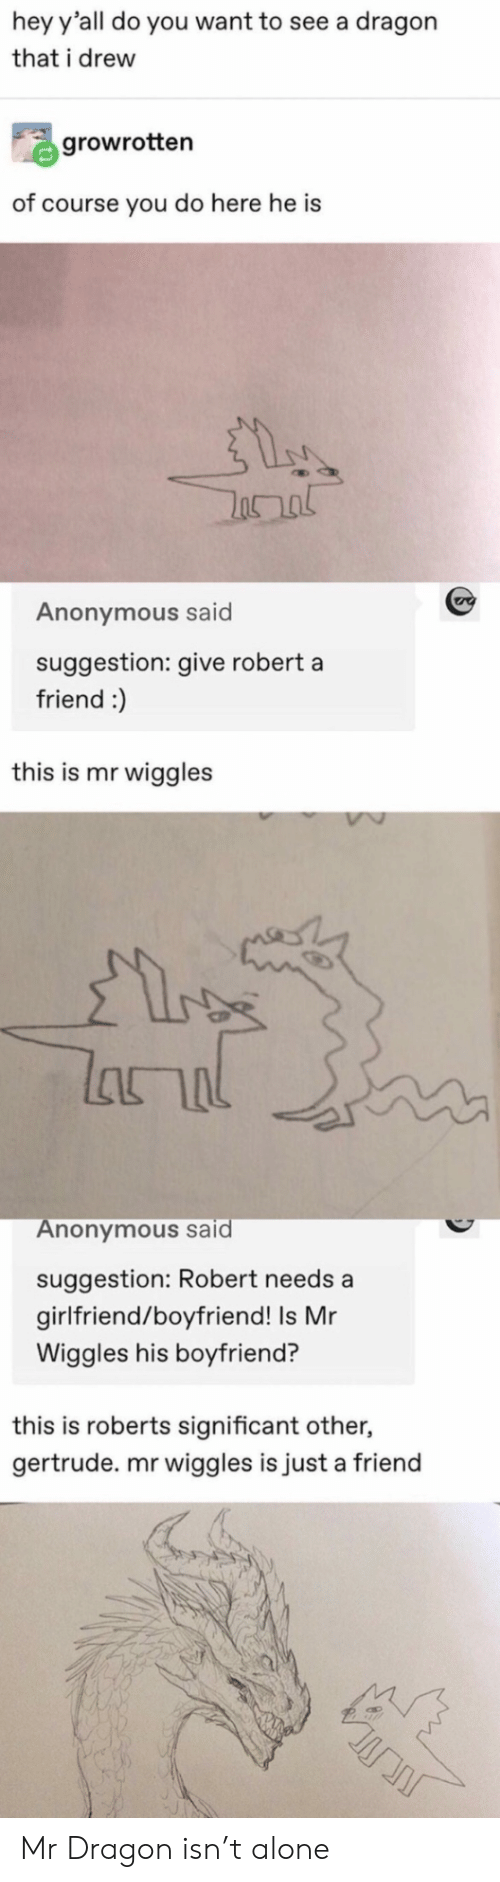 significant other: hey y'all do you want to see a dragon  that i drew  growrotten  of course you do here he is  Anonymous said  suggestion: give robert a  friend :)  this is mr wiggles  lhור  Anonymous said  suggestion: Robert needs a  girlfriend/boyfriend! Is Mr  Wiggles his boyfriend?  this is roberts significant other,  gertrude. mr wiggles is just a friend Mr Dragon isn't alone